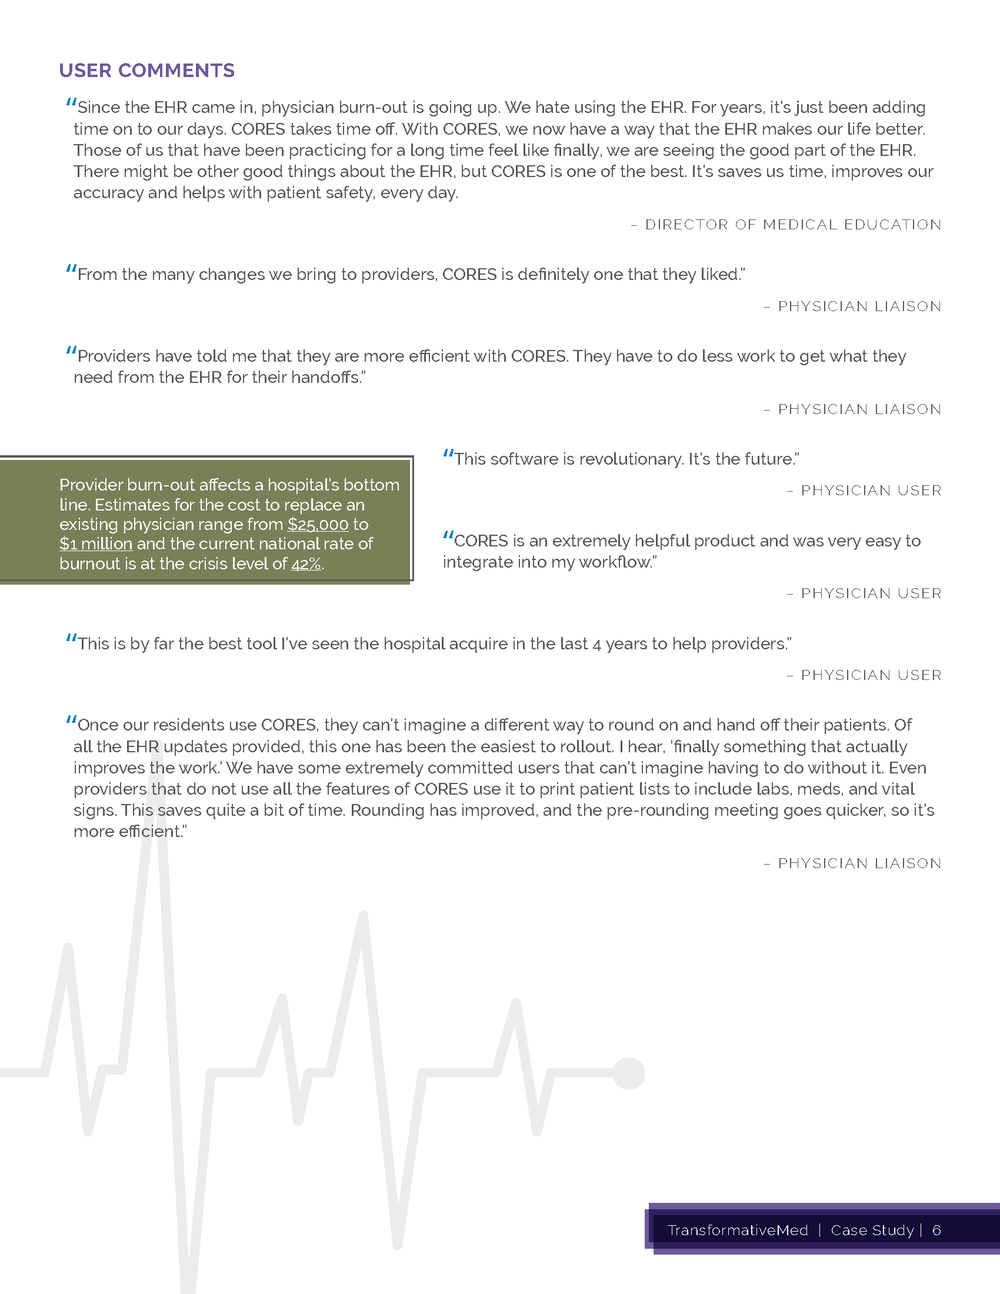 TransformativeMed-Case-Study-digital-simple_Page_06.png